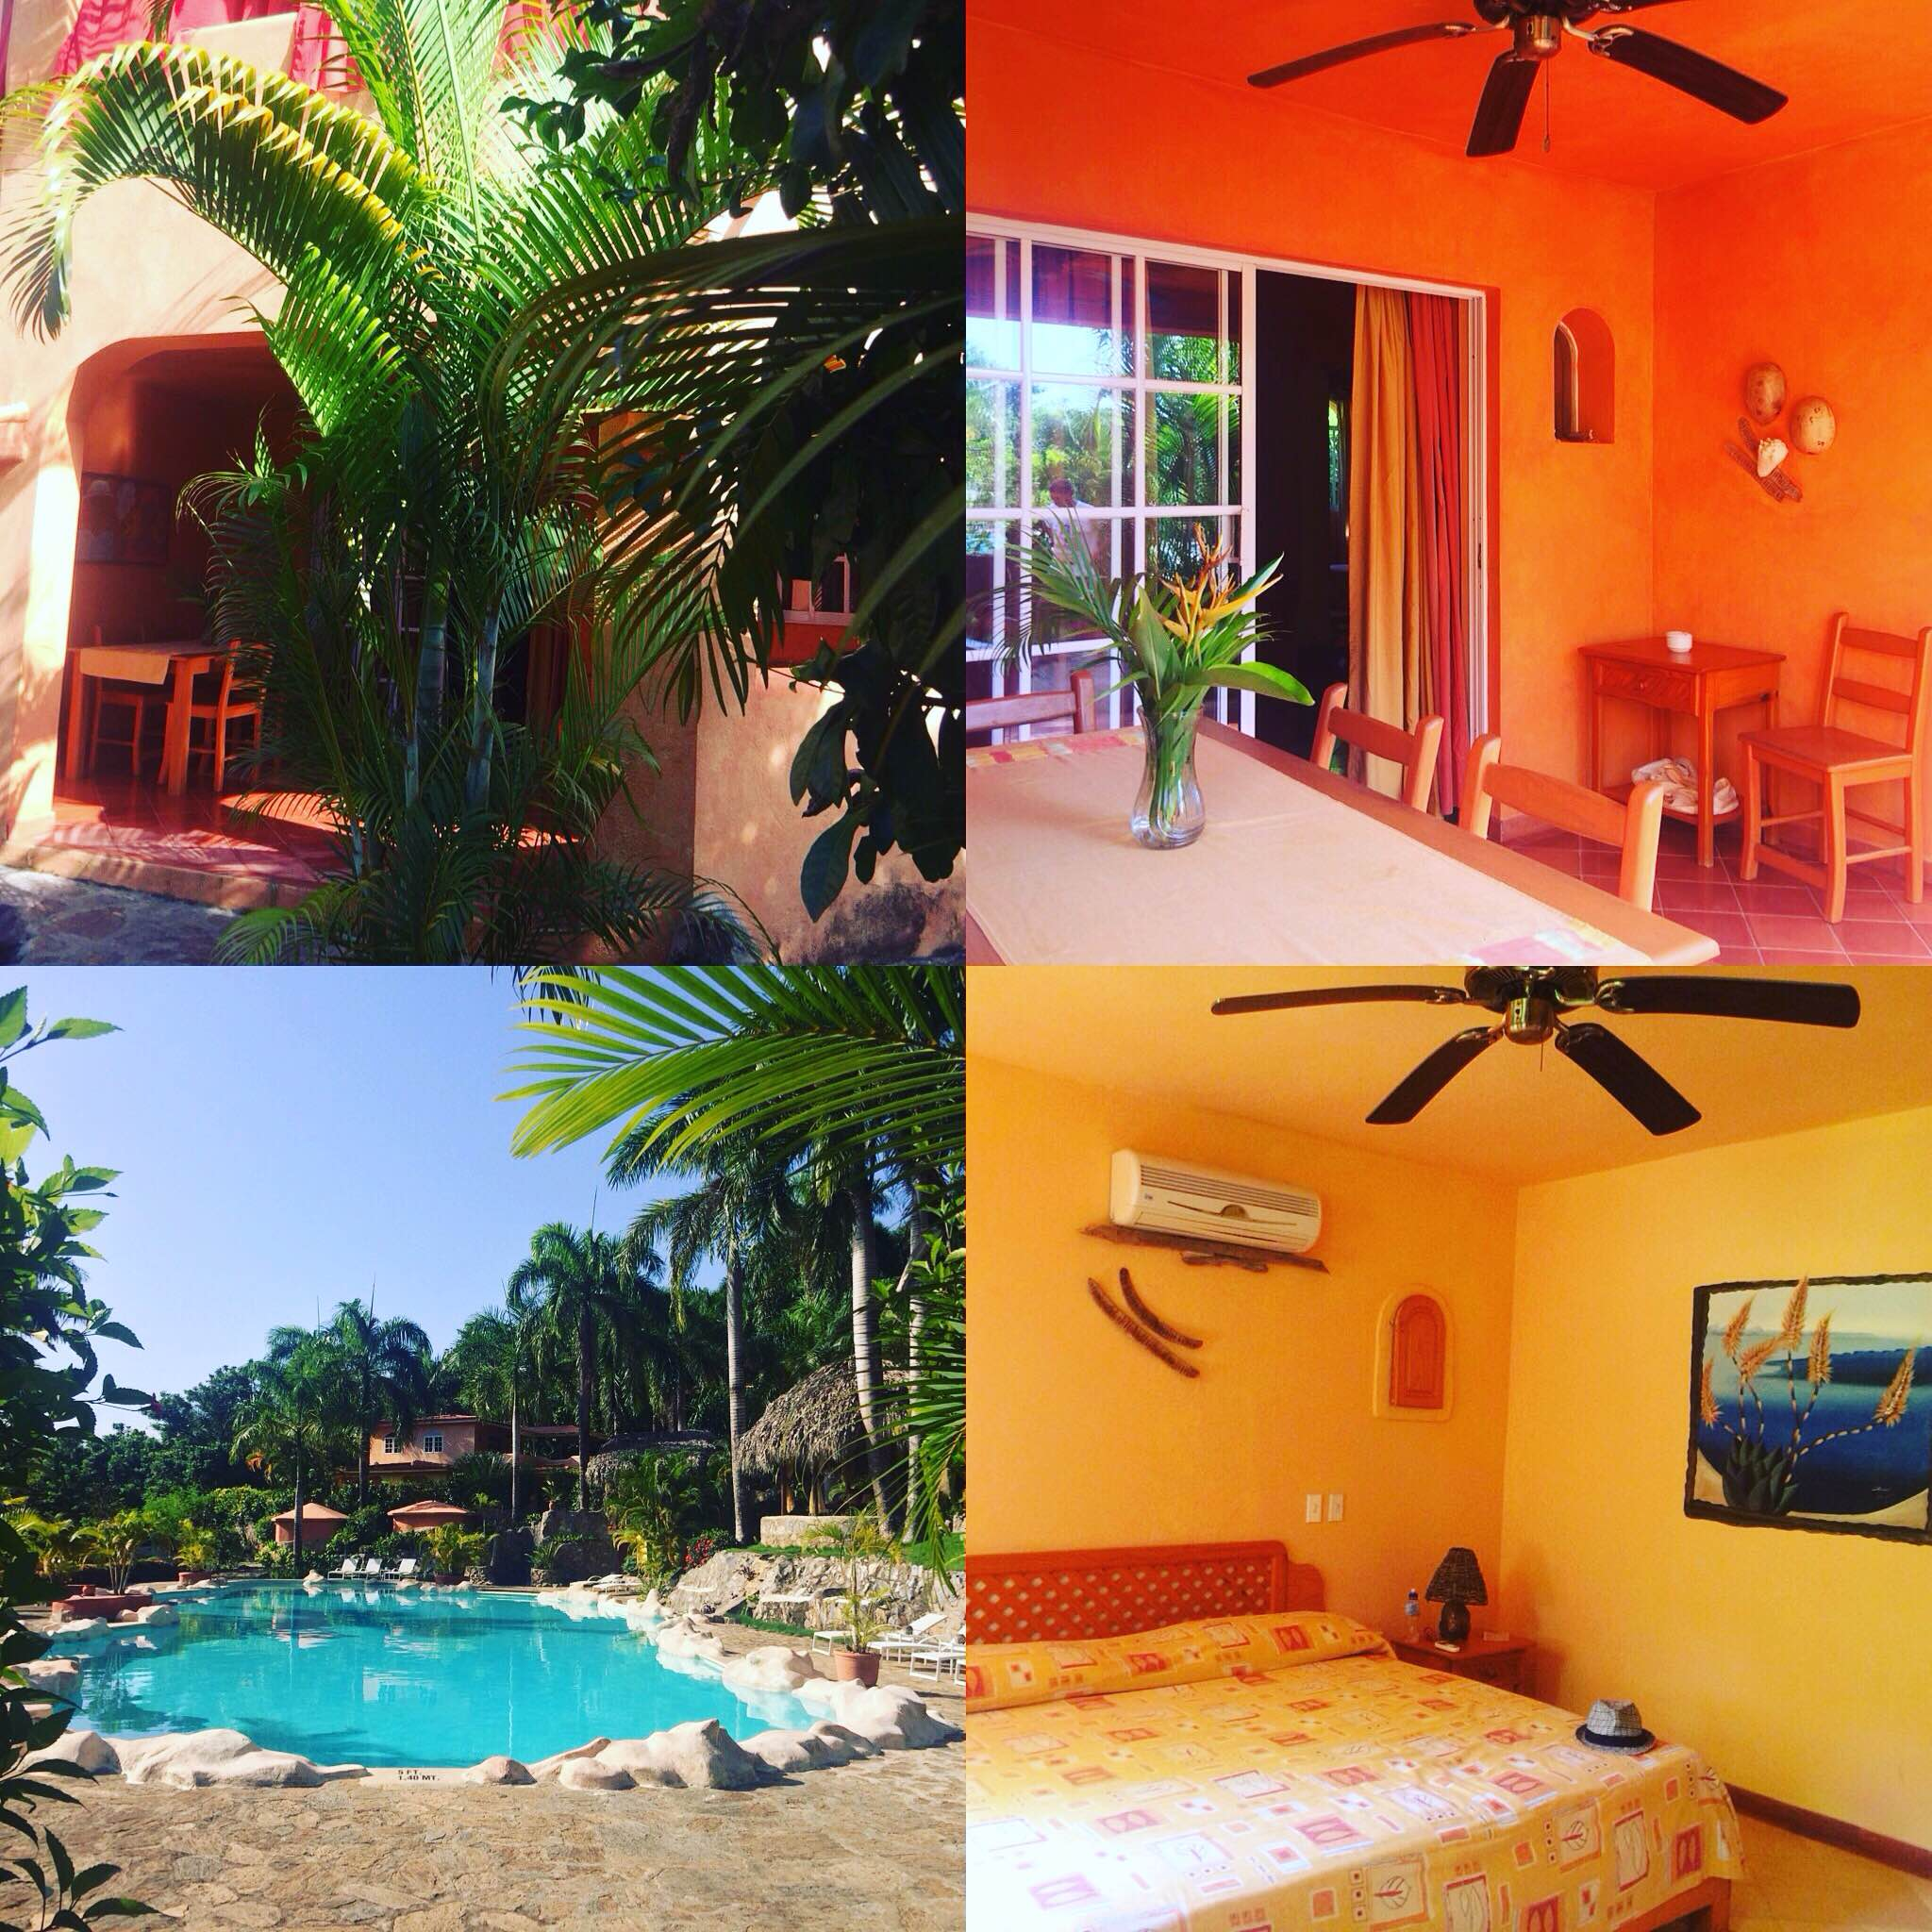 2 BED 2 BATH CARIBBEAN CONDO, CLOSE TO PLAYA BONITA - A571LT - $120,000 USD